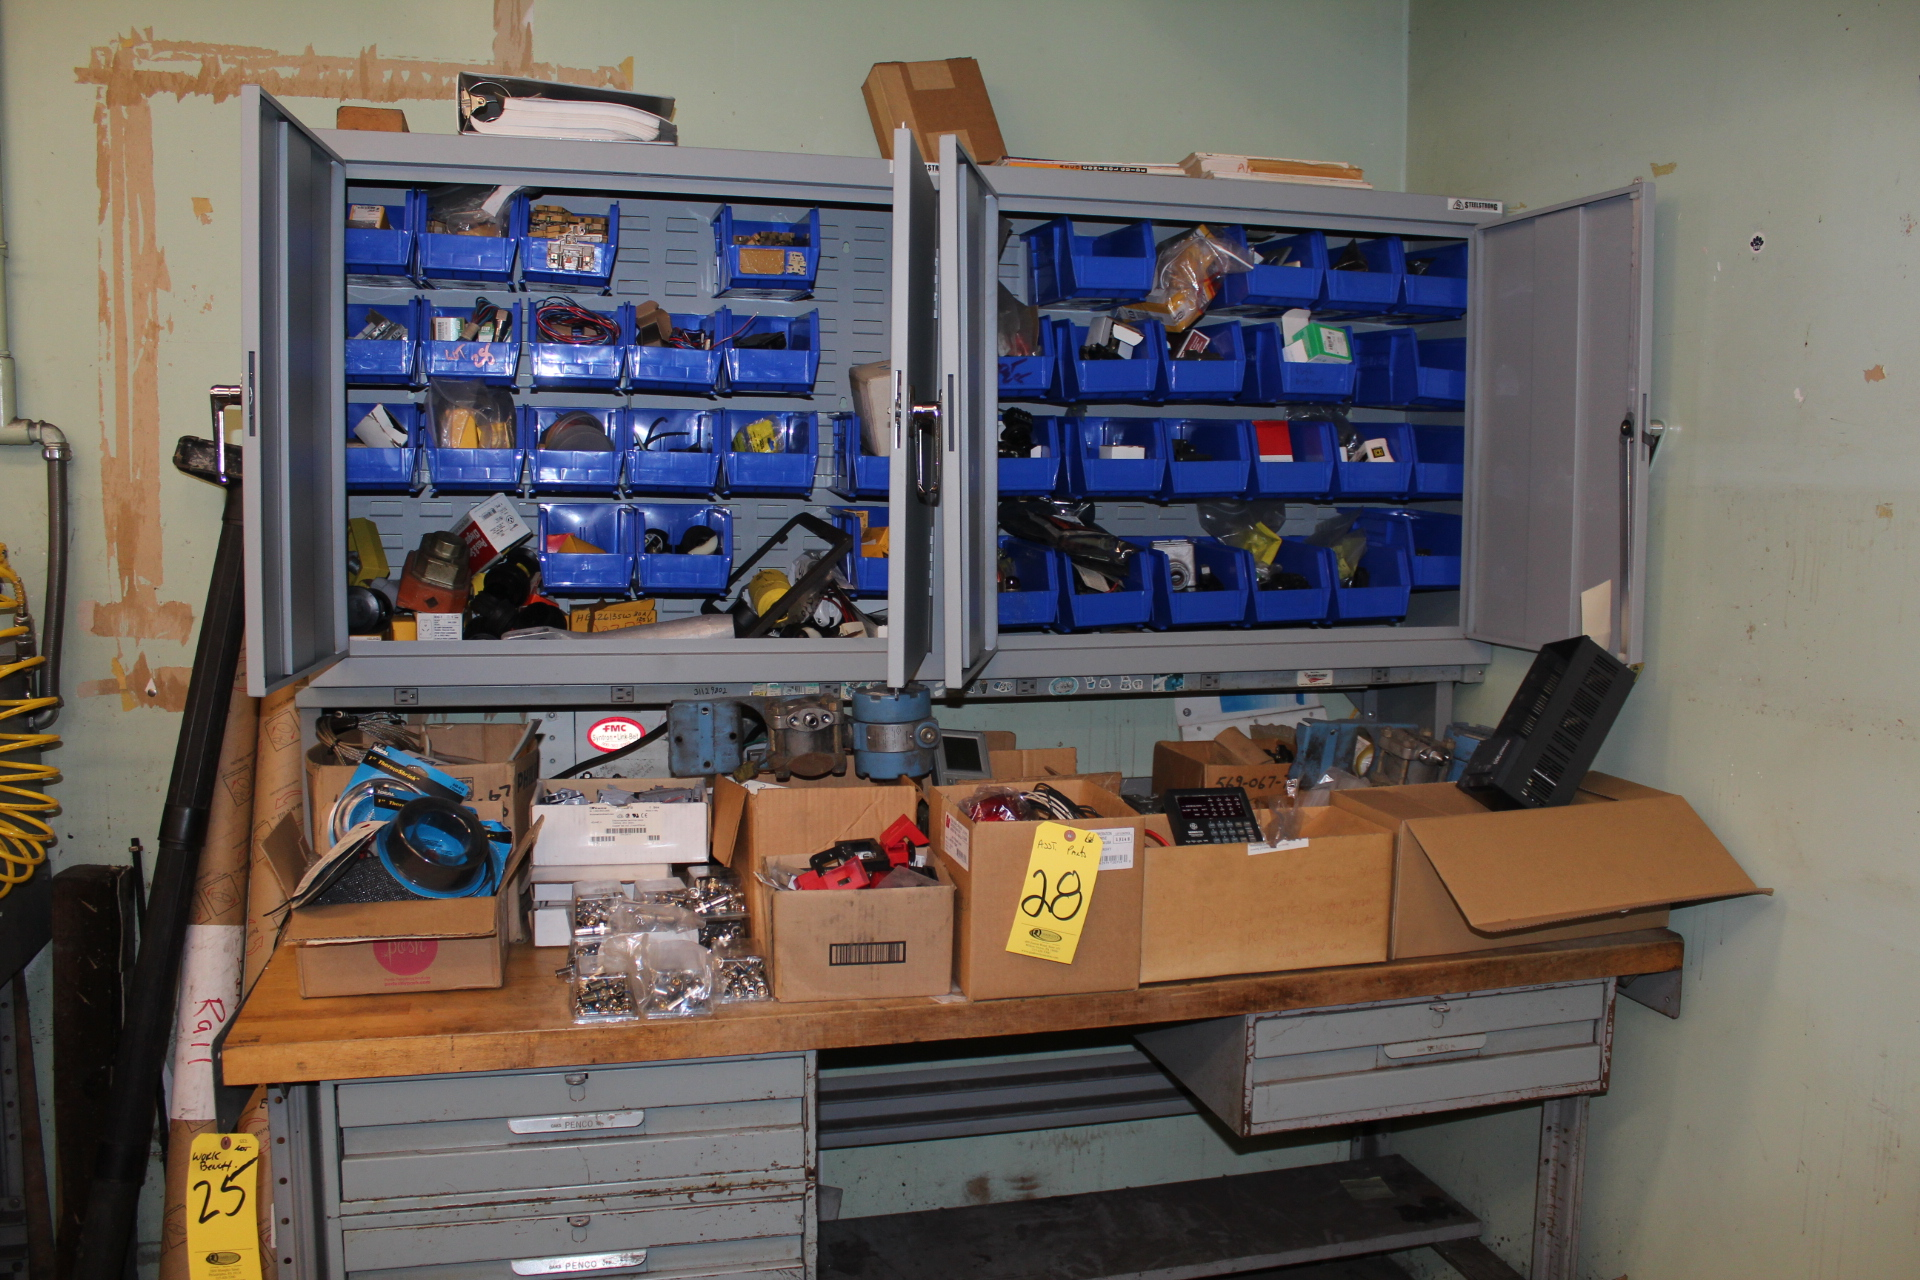 CONTENTS ON BENCH IN CABINETS & 2-DD SUPPLY CABINETS ON BENCH